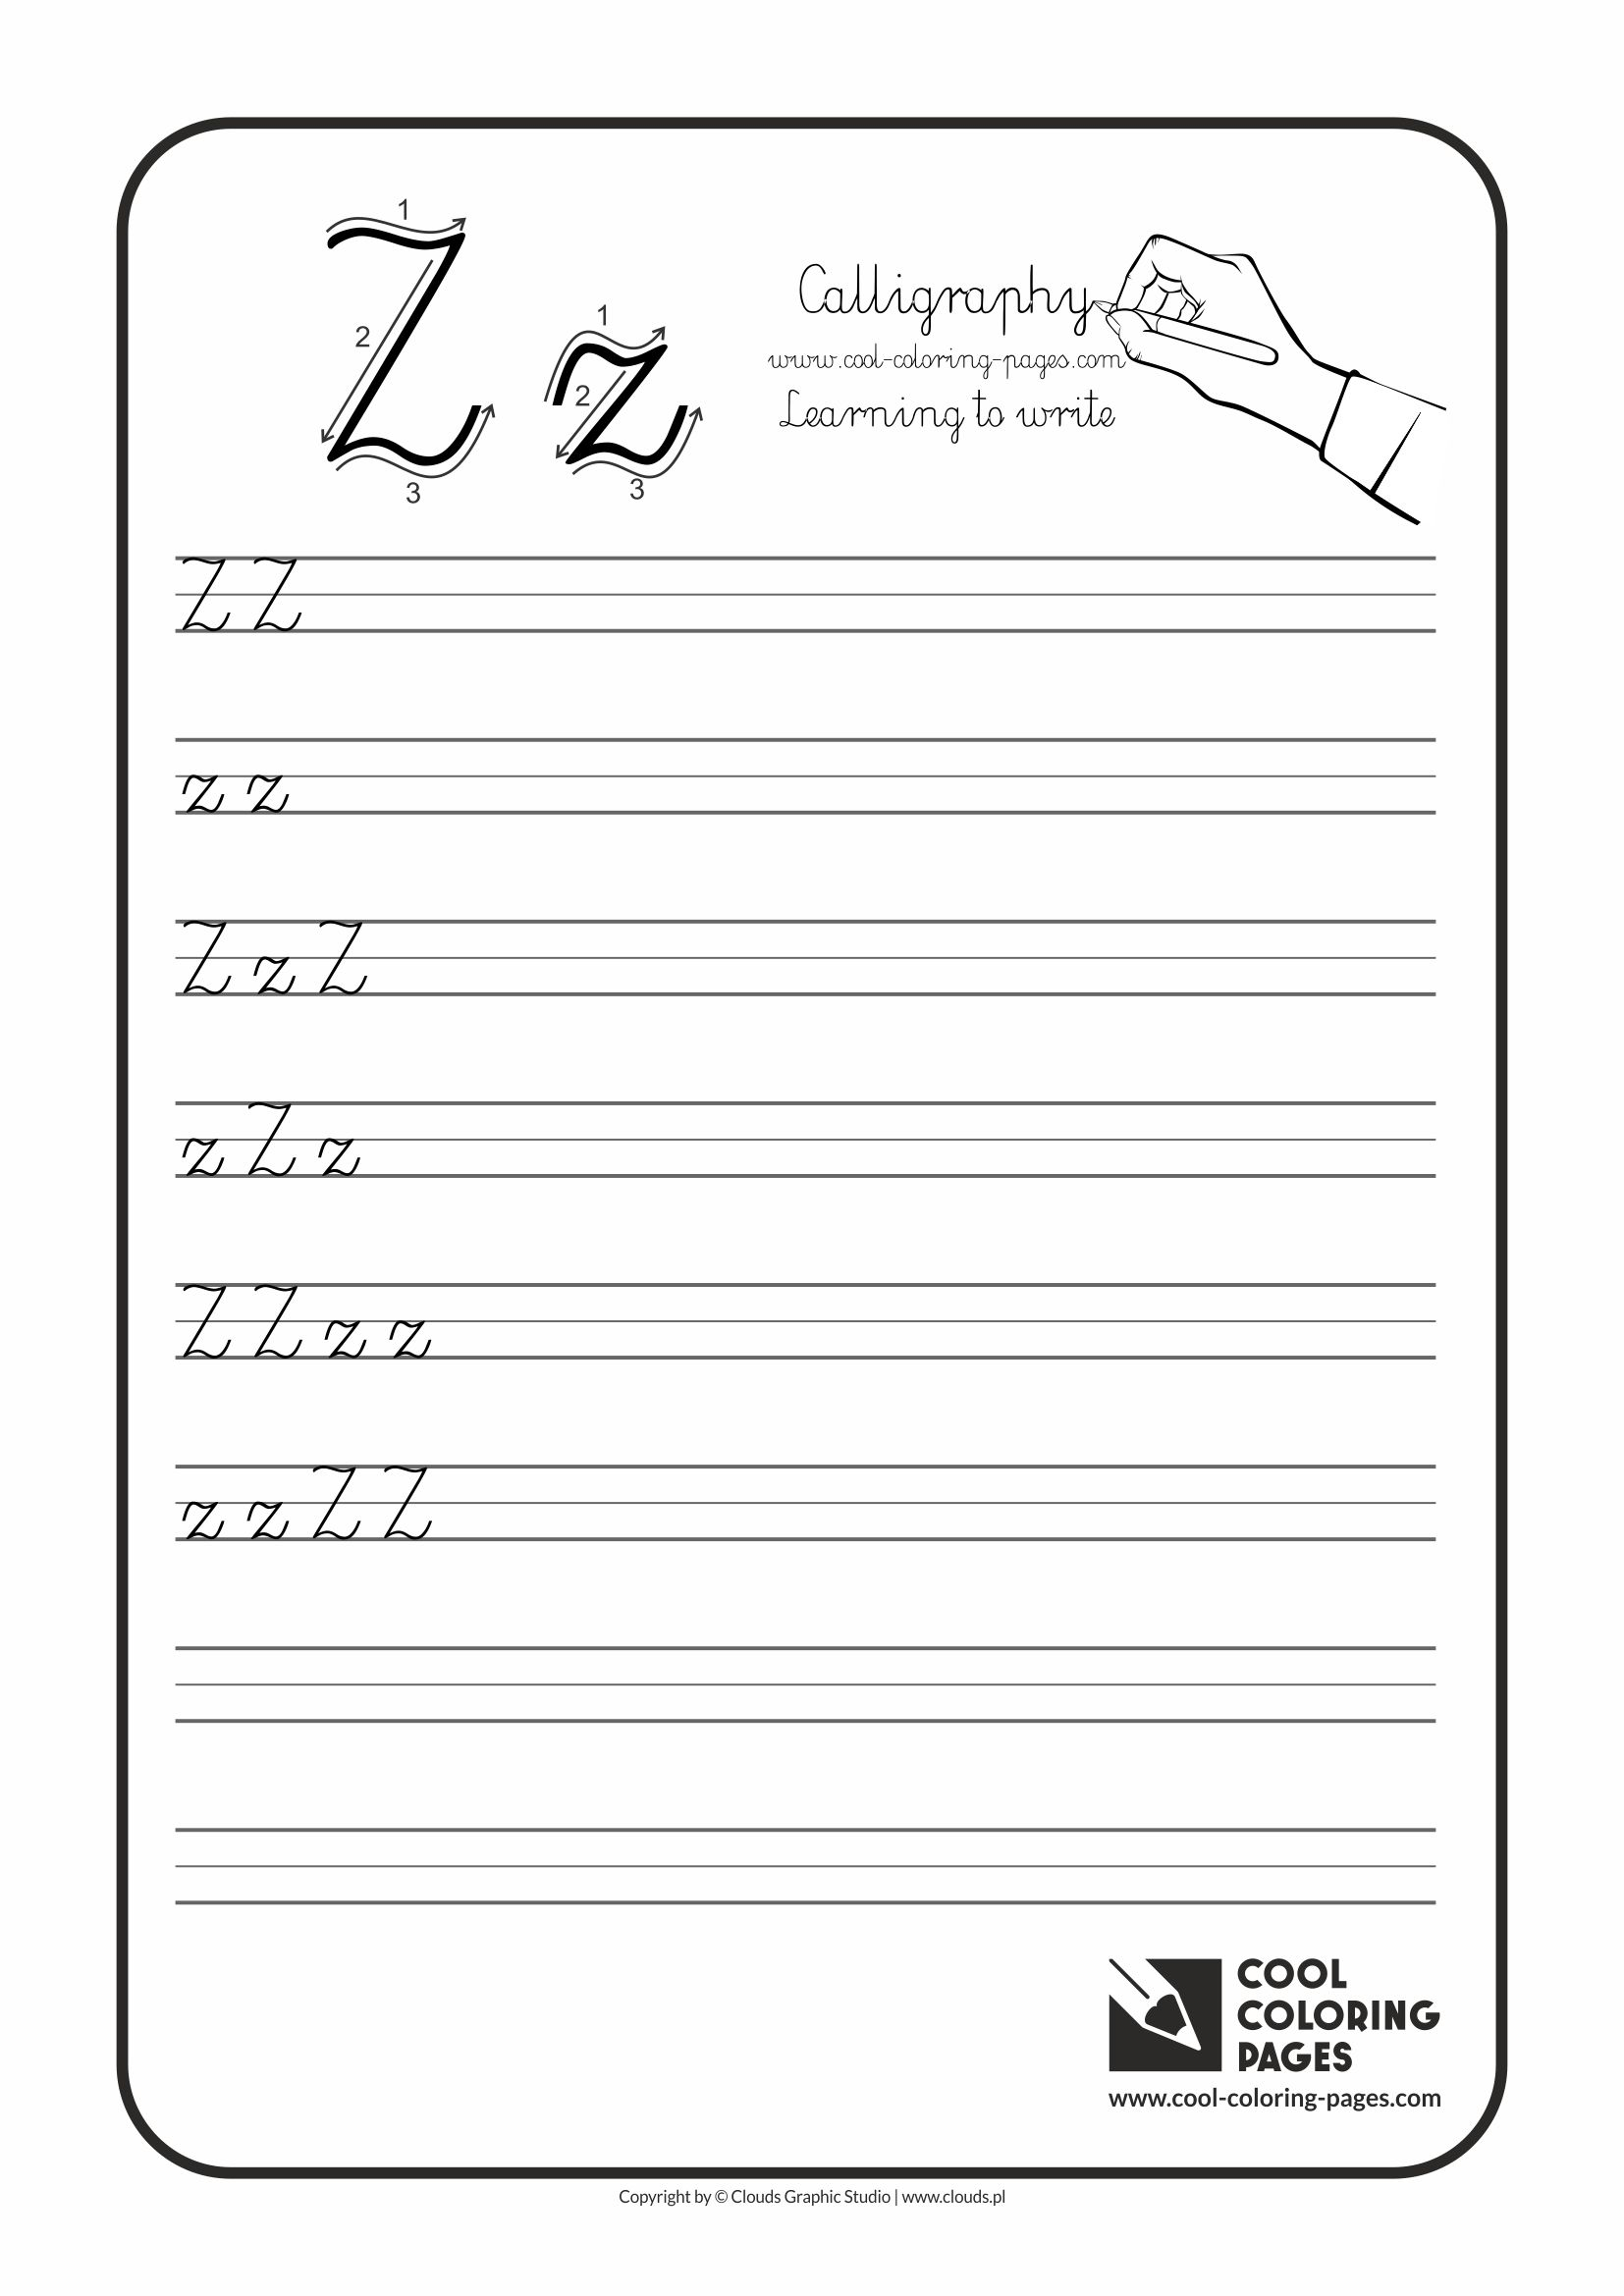 Cool Coloring Pages Calligraphy For Kids